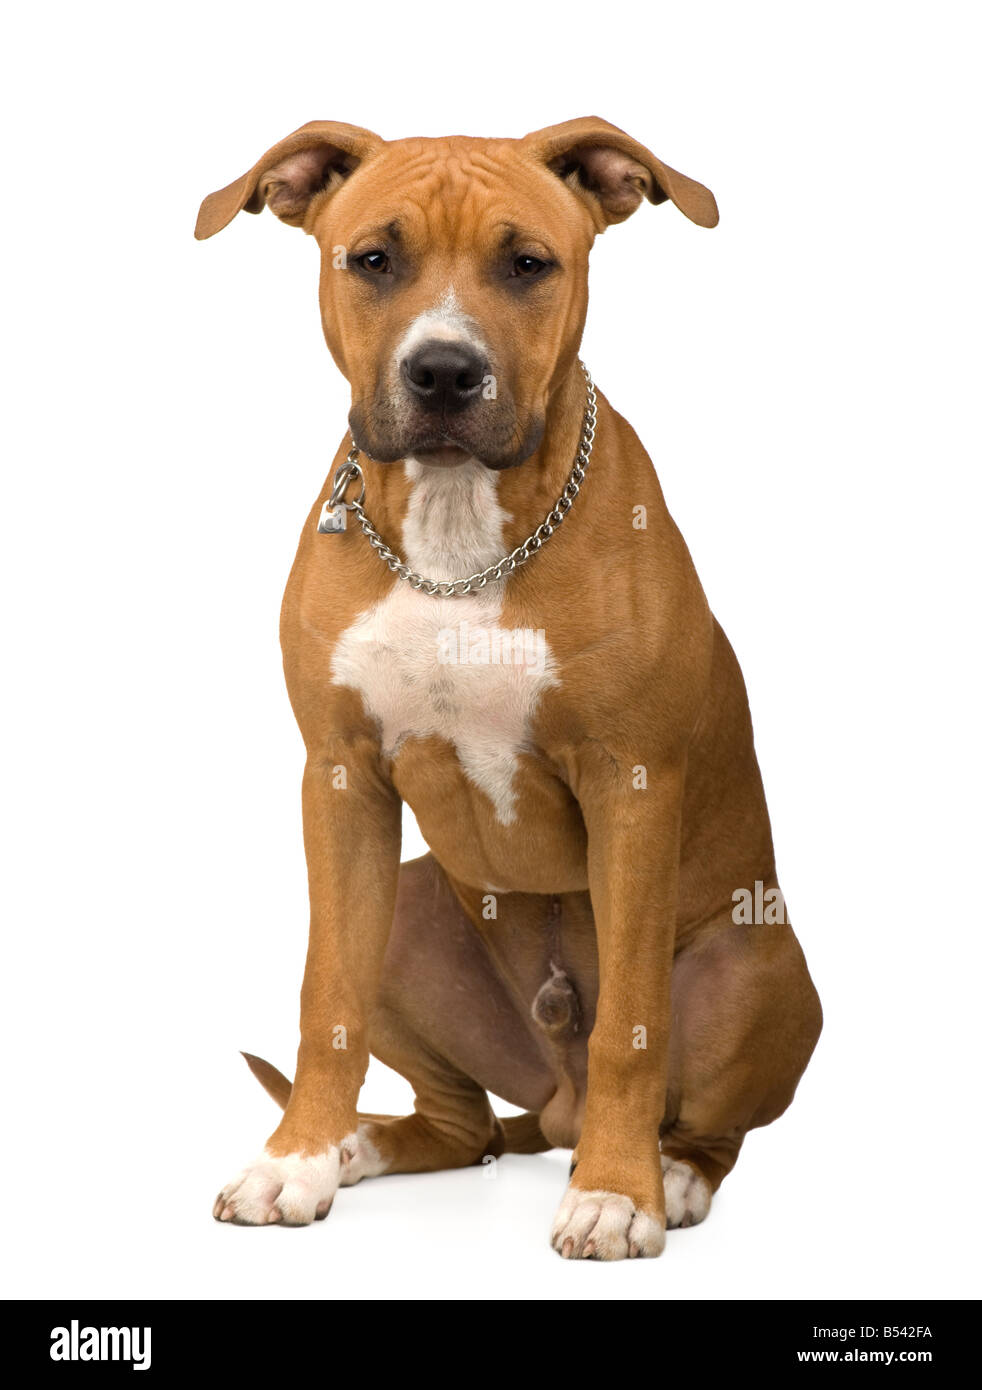 American Staffordshire terrier in front of a white background - Stock Image